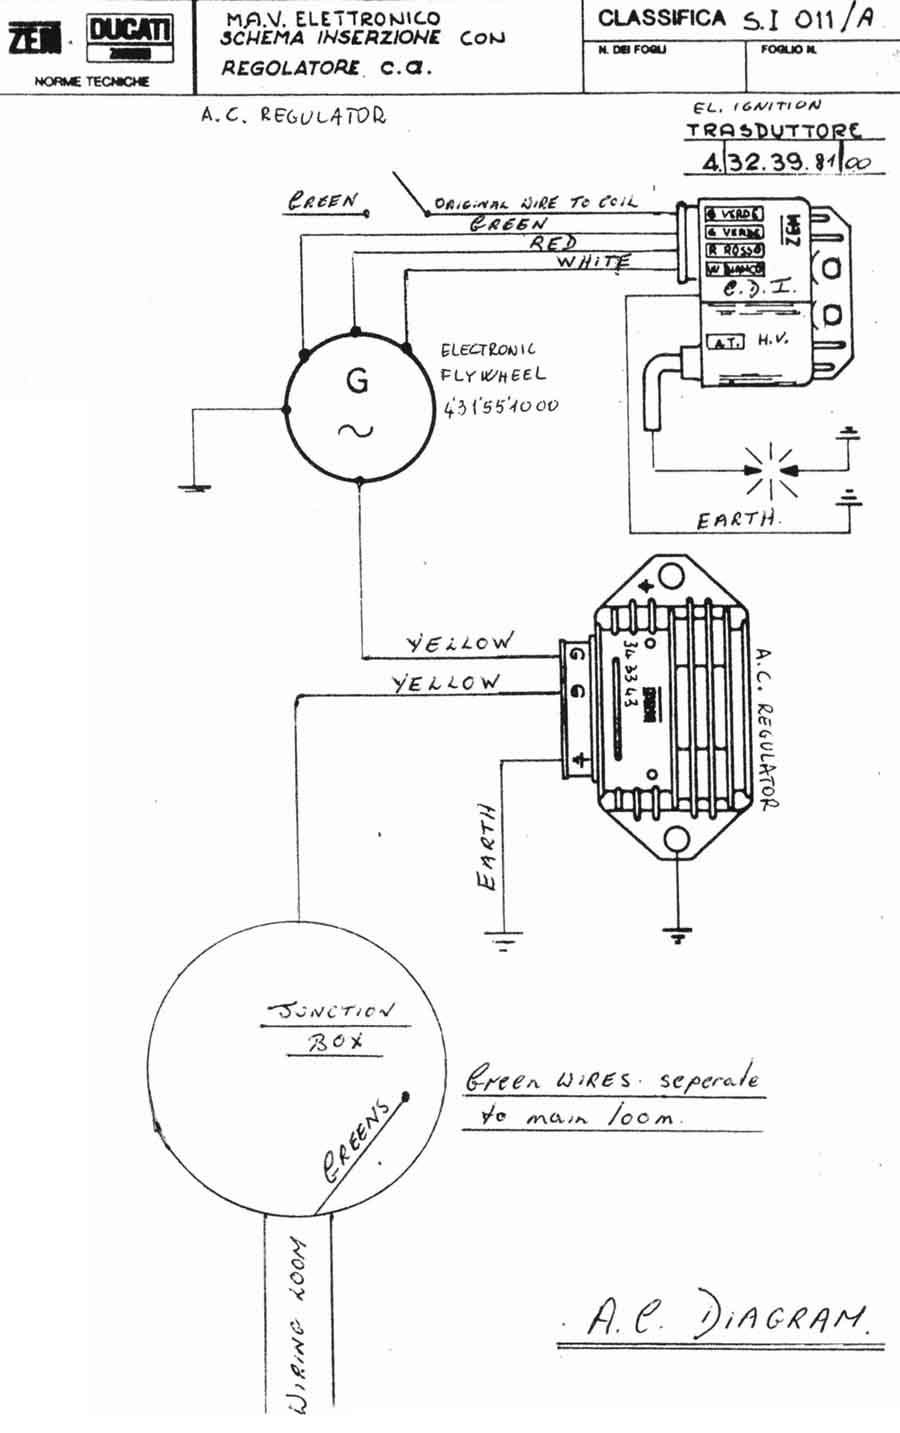 Af Rayspeed Ltd - Scooter Sales, Service, Repairs, Customising - Scooter Ignition Switch Wiring Diagram